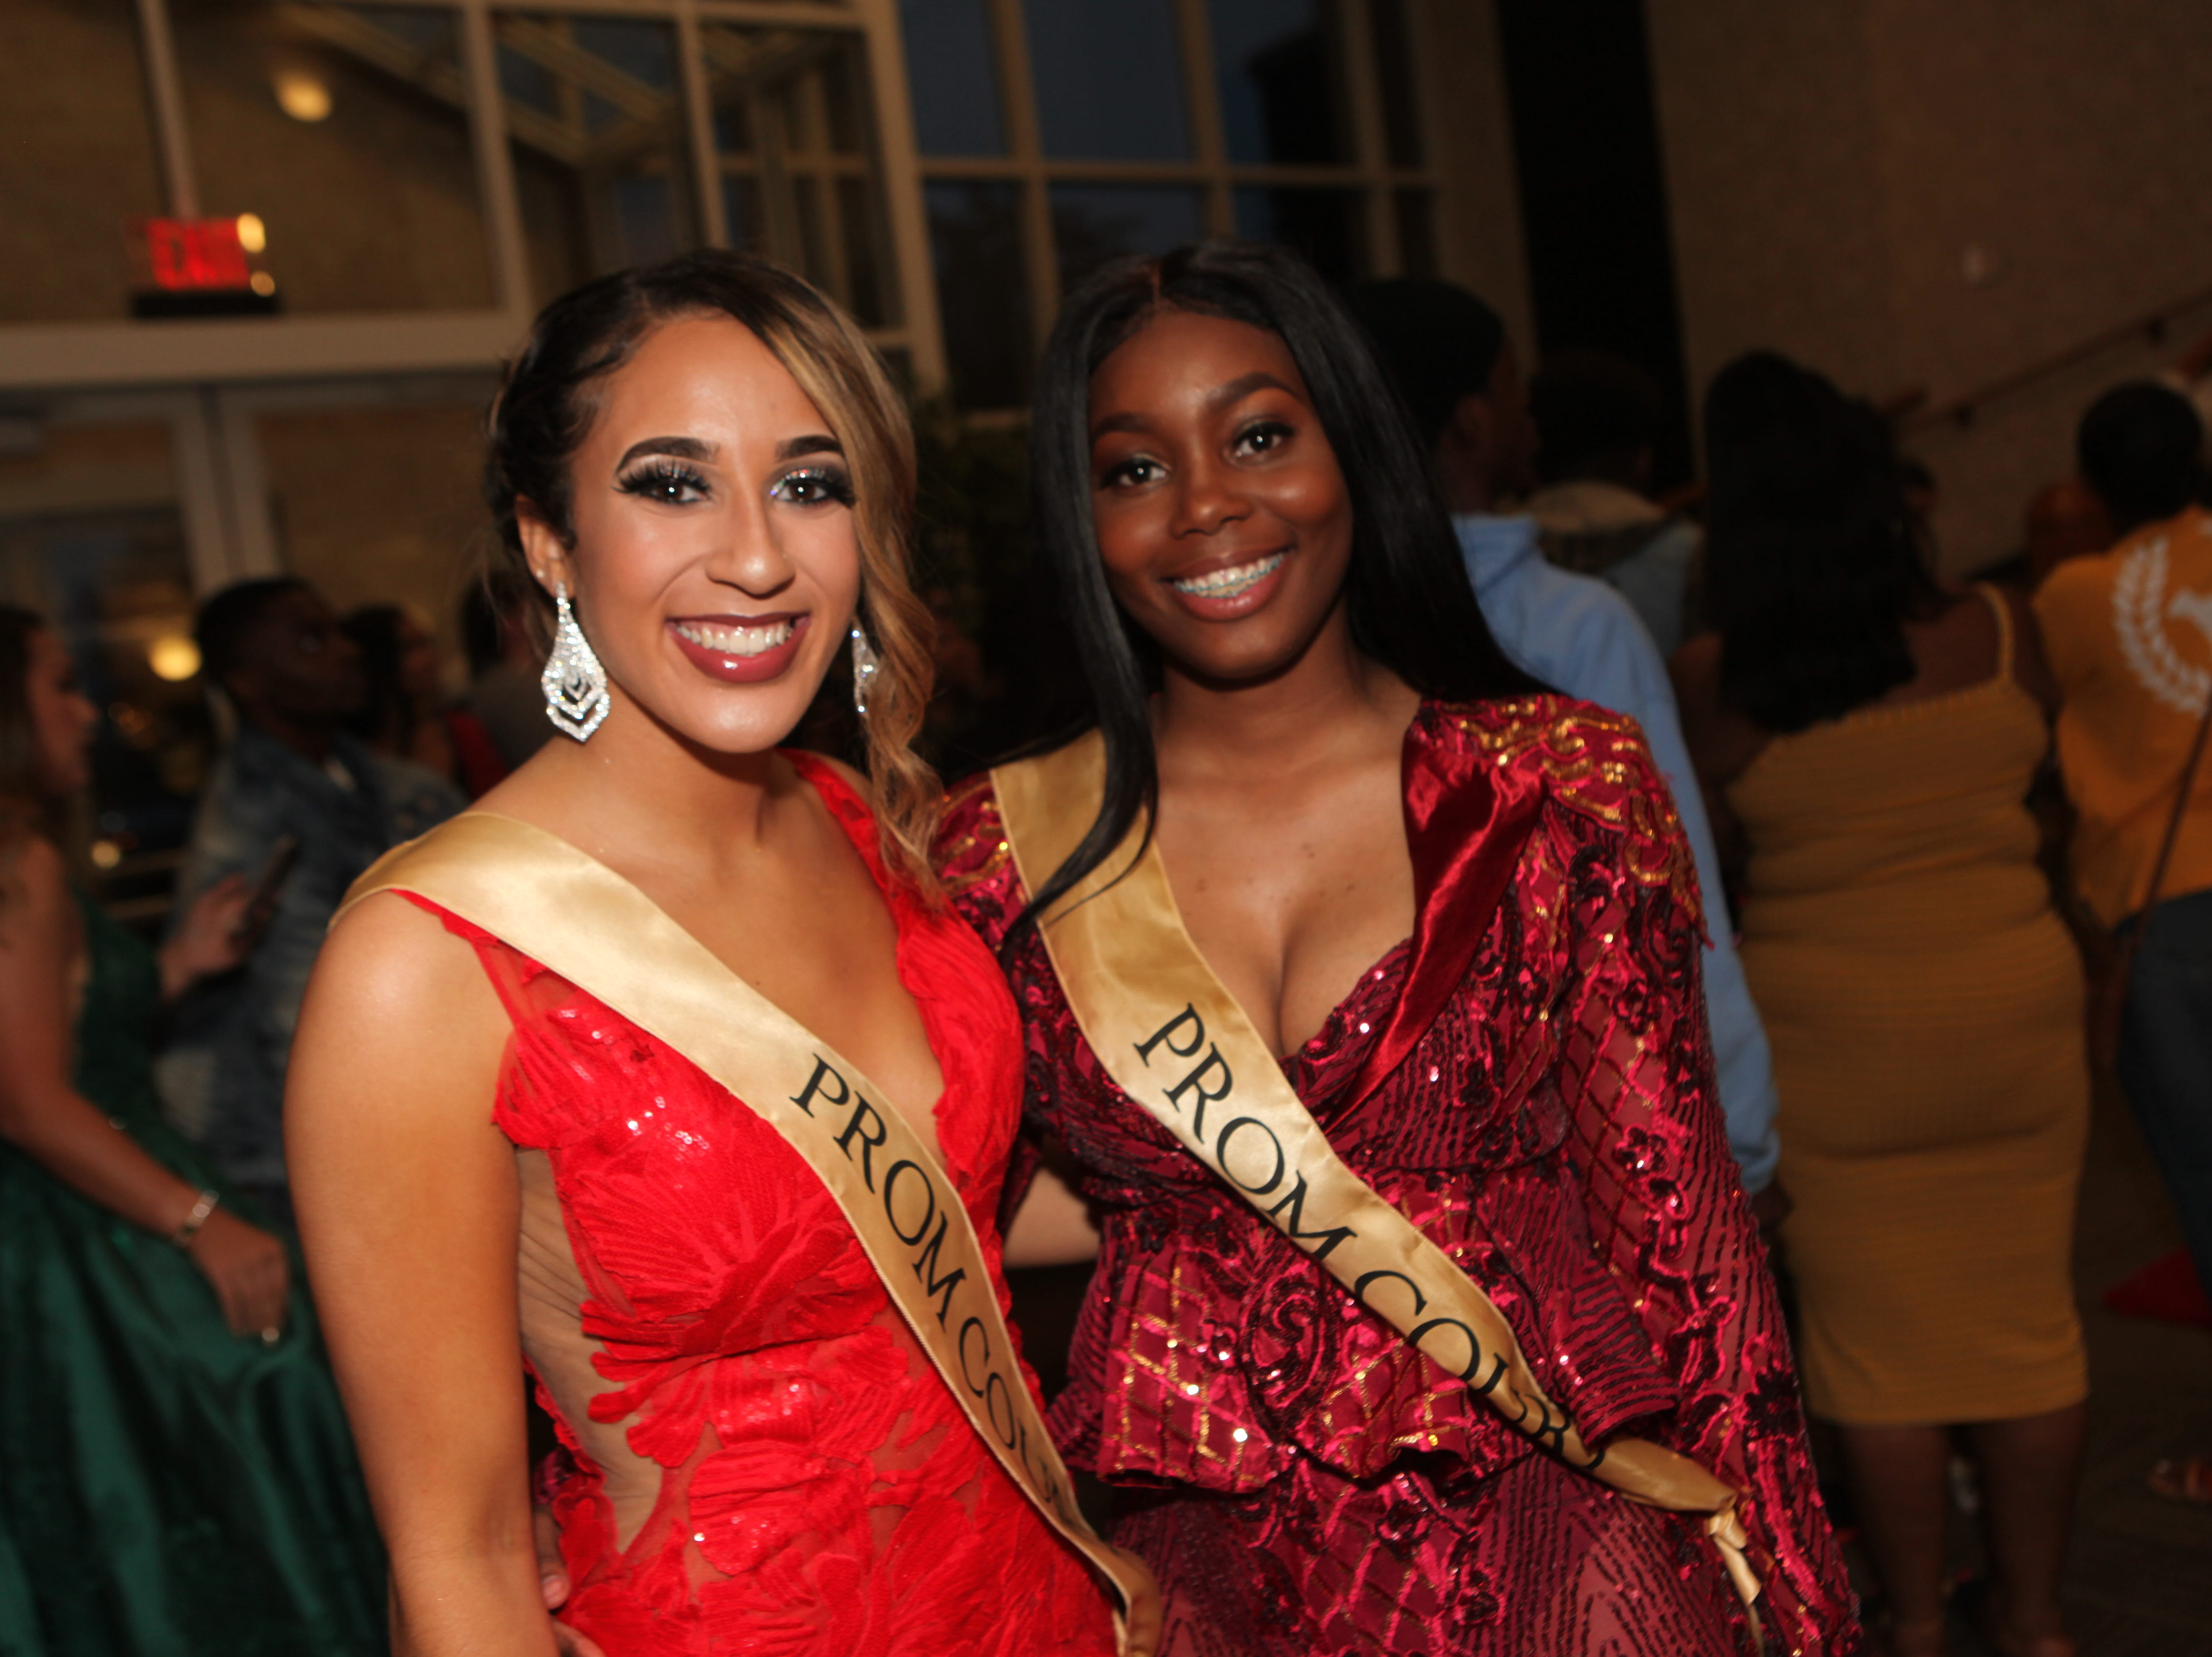 Karrington Craine and Anthonique Green at West Creek High School's 2019 prom 2019, Saturday, May 4.